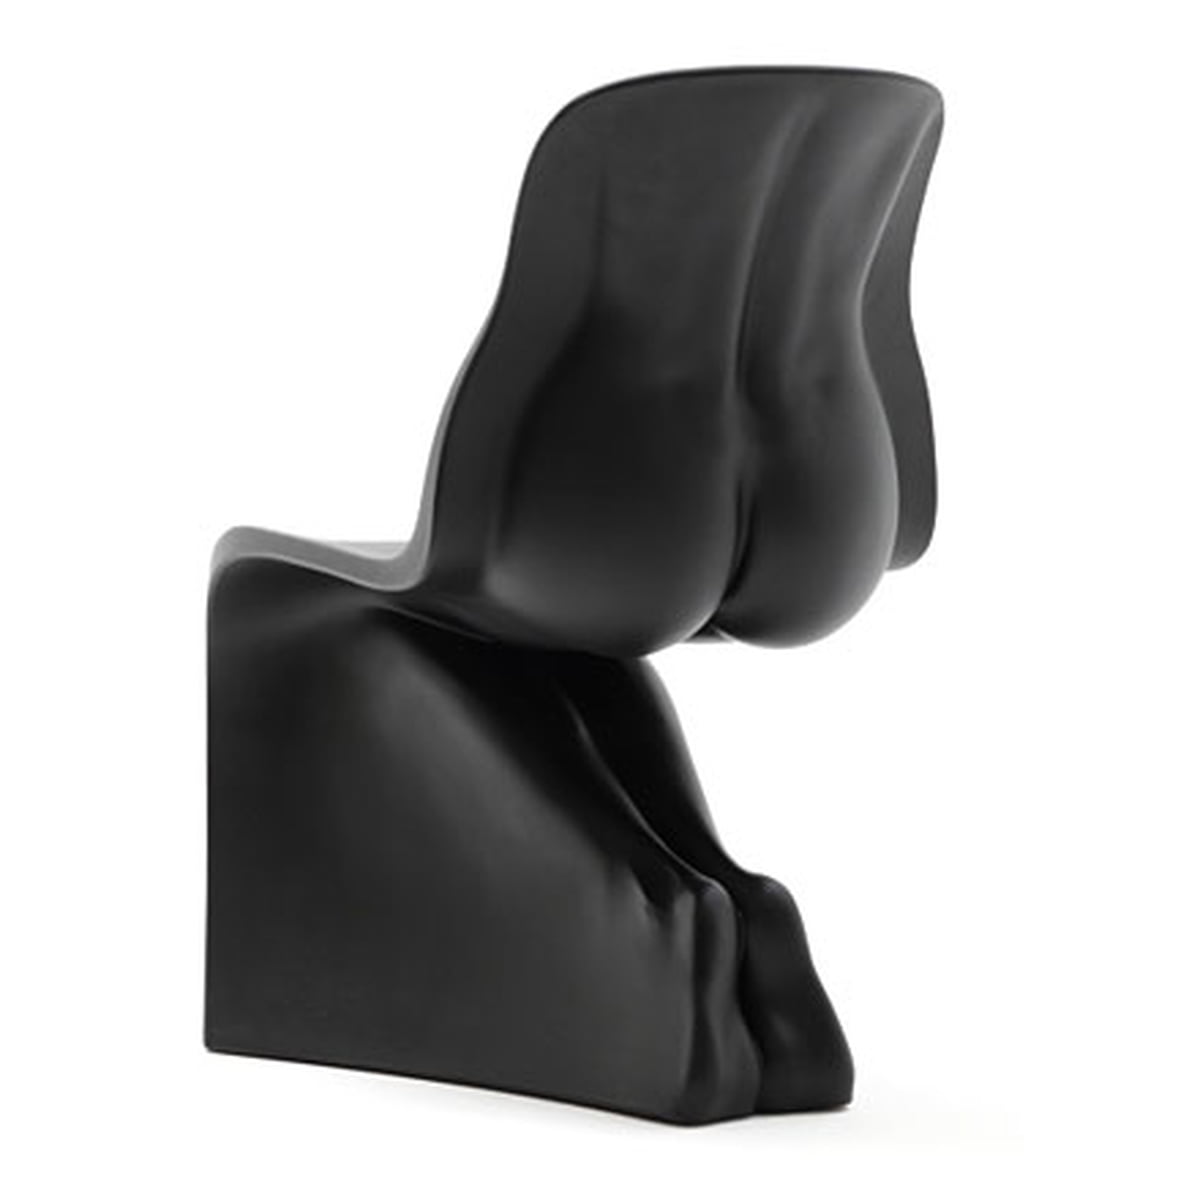 himher Chair CasamaniaConnox Online Shop